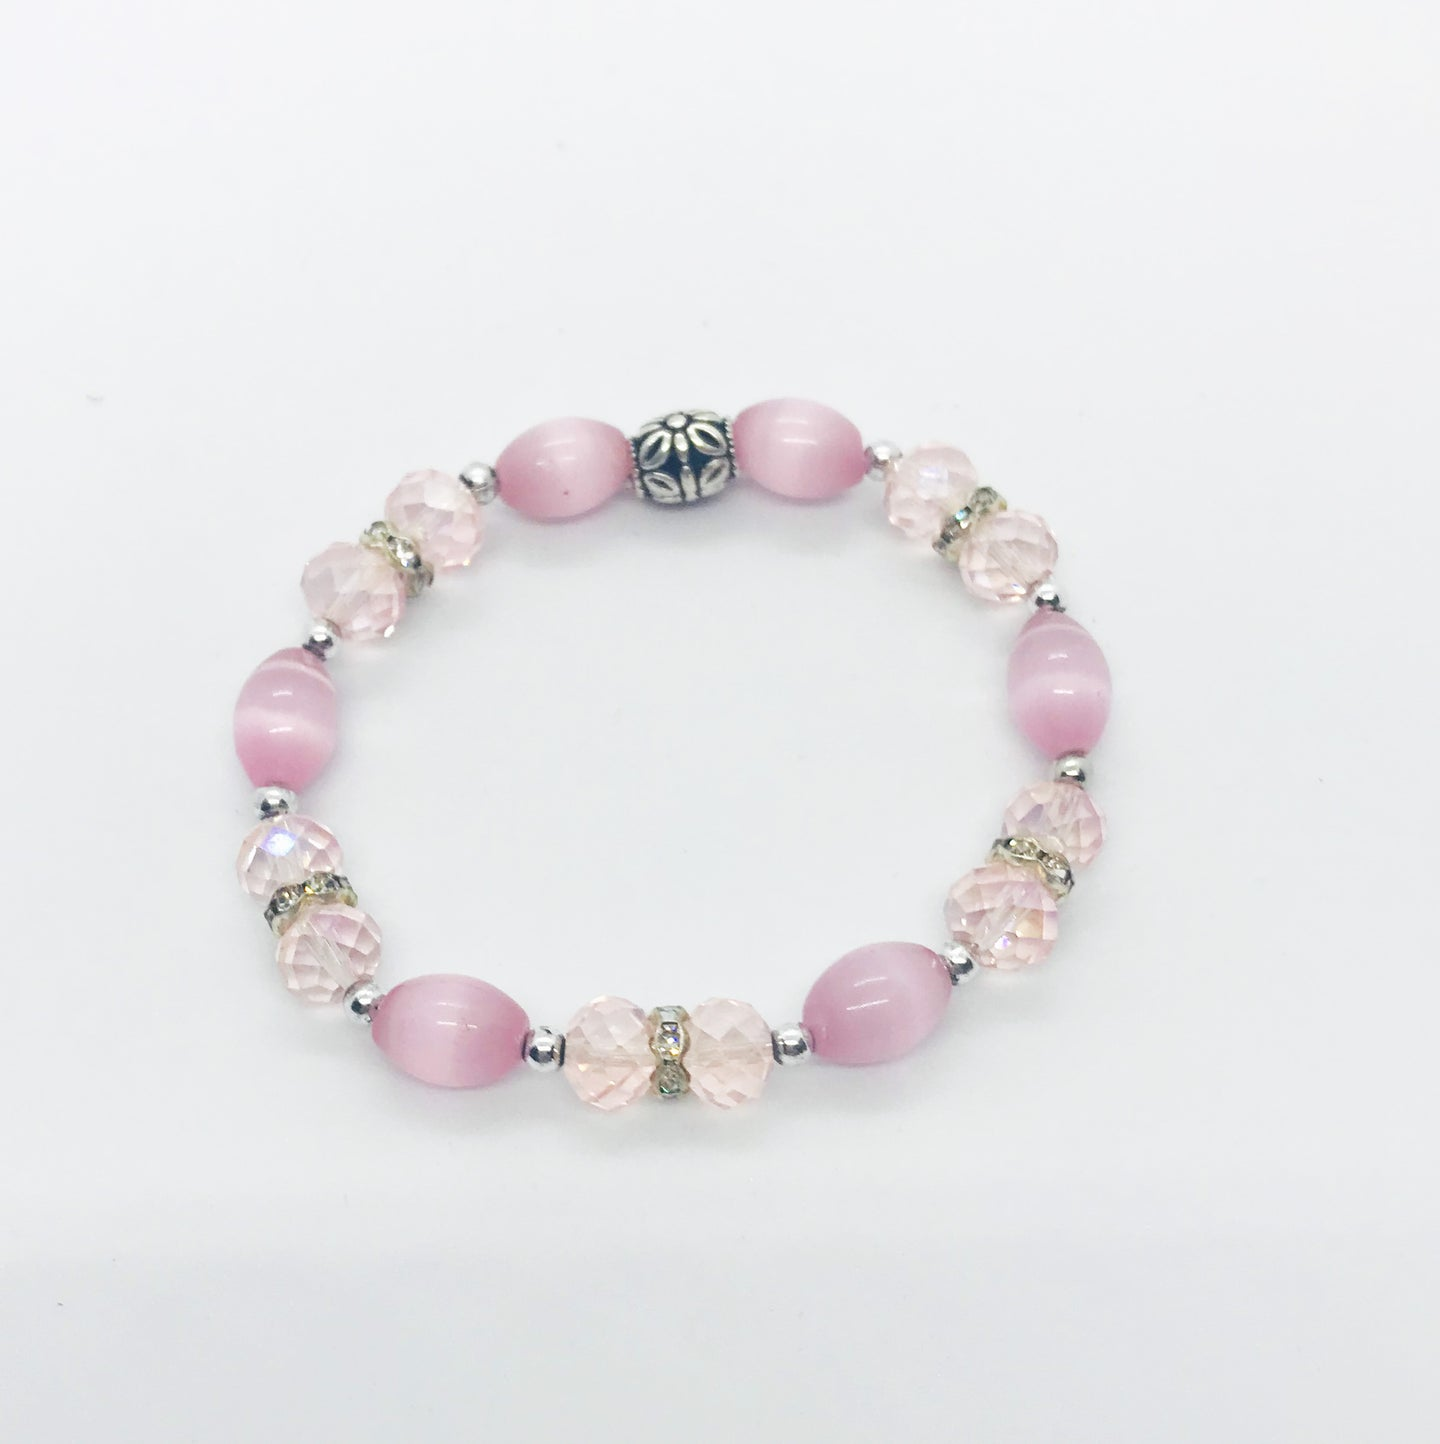 Glass Bead Bracelet - B668